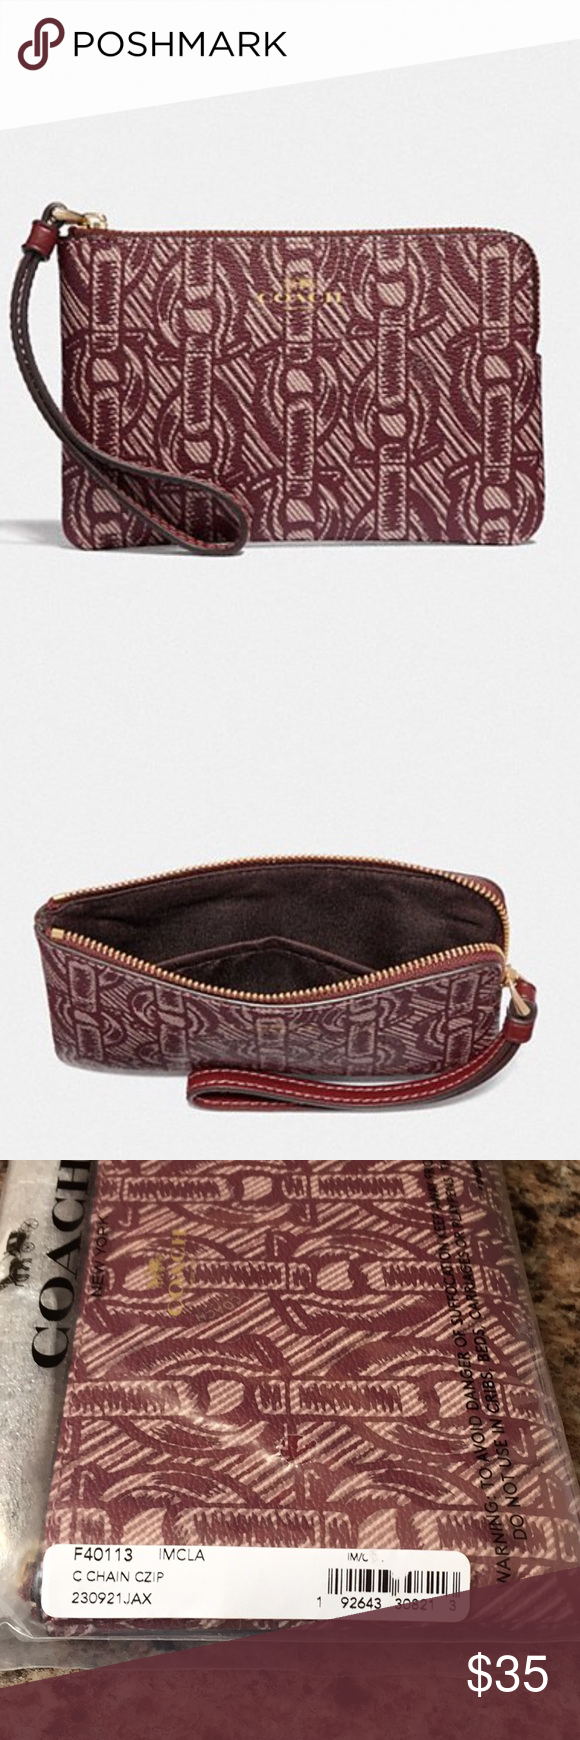 ec2237f28b3 Corner Zip Wristlet with Chain Print Style F40113. Printed coated Canvas  with smooth leather details